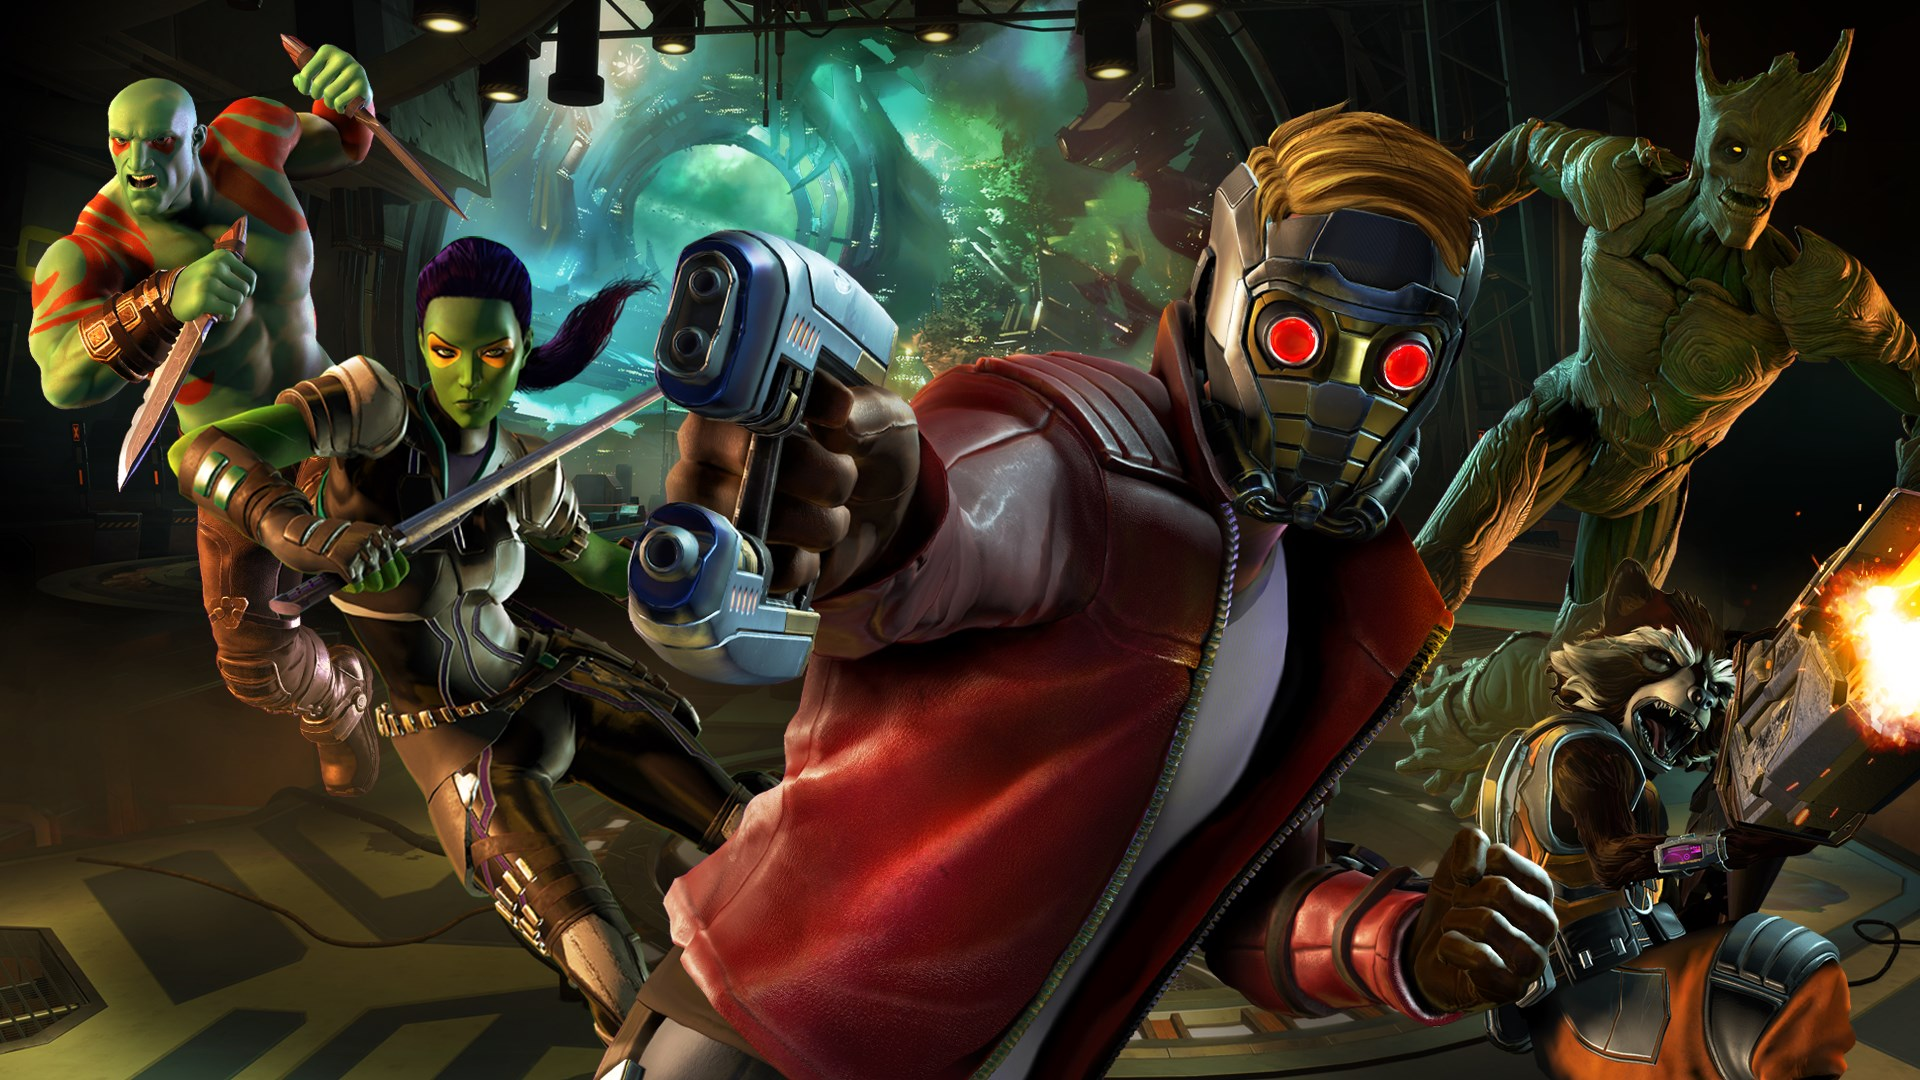 933e15f50 Leaked Guardians of the Galaxy Star Lord outfit could be coming to Fortnite